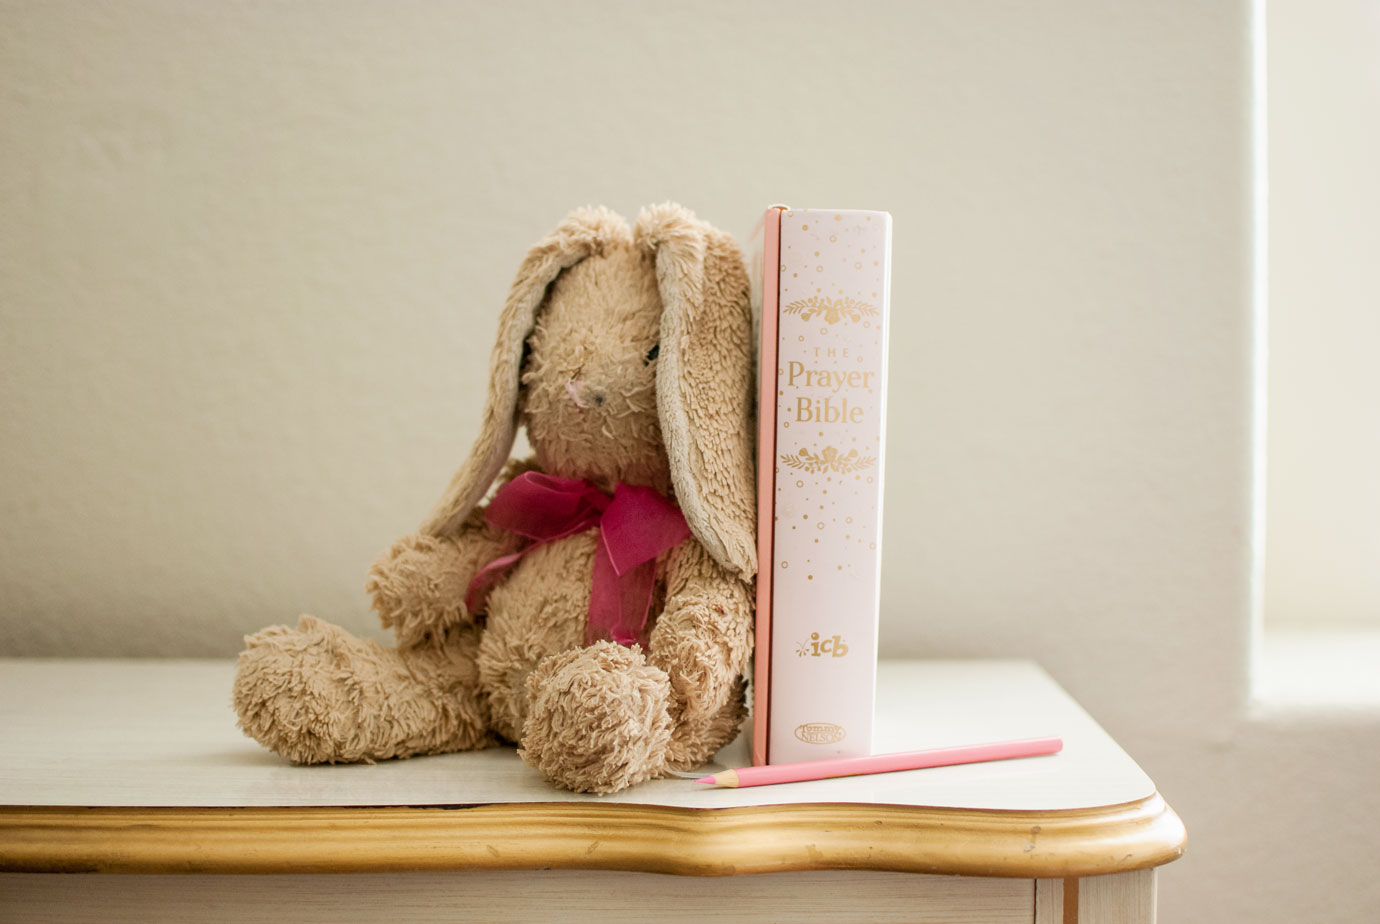 ICB Prayer Bible For Children with a Velveteen Rabbit Stuffed Toy  #ICBPrayerBible